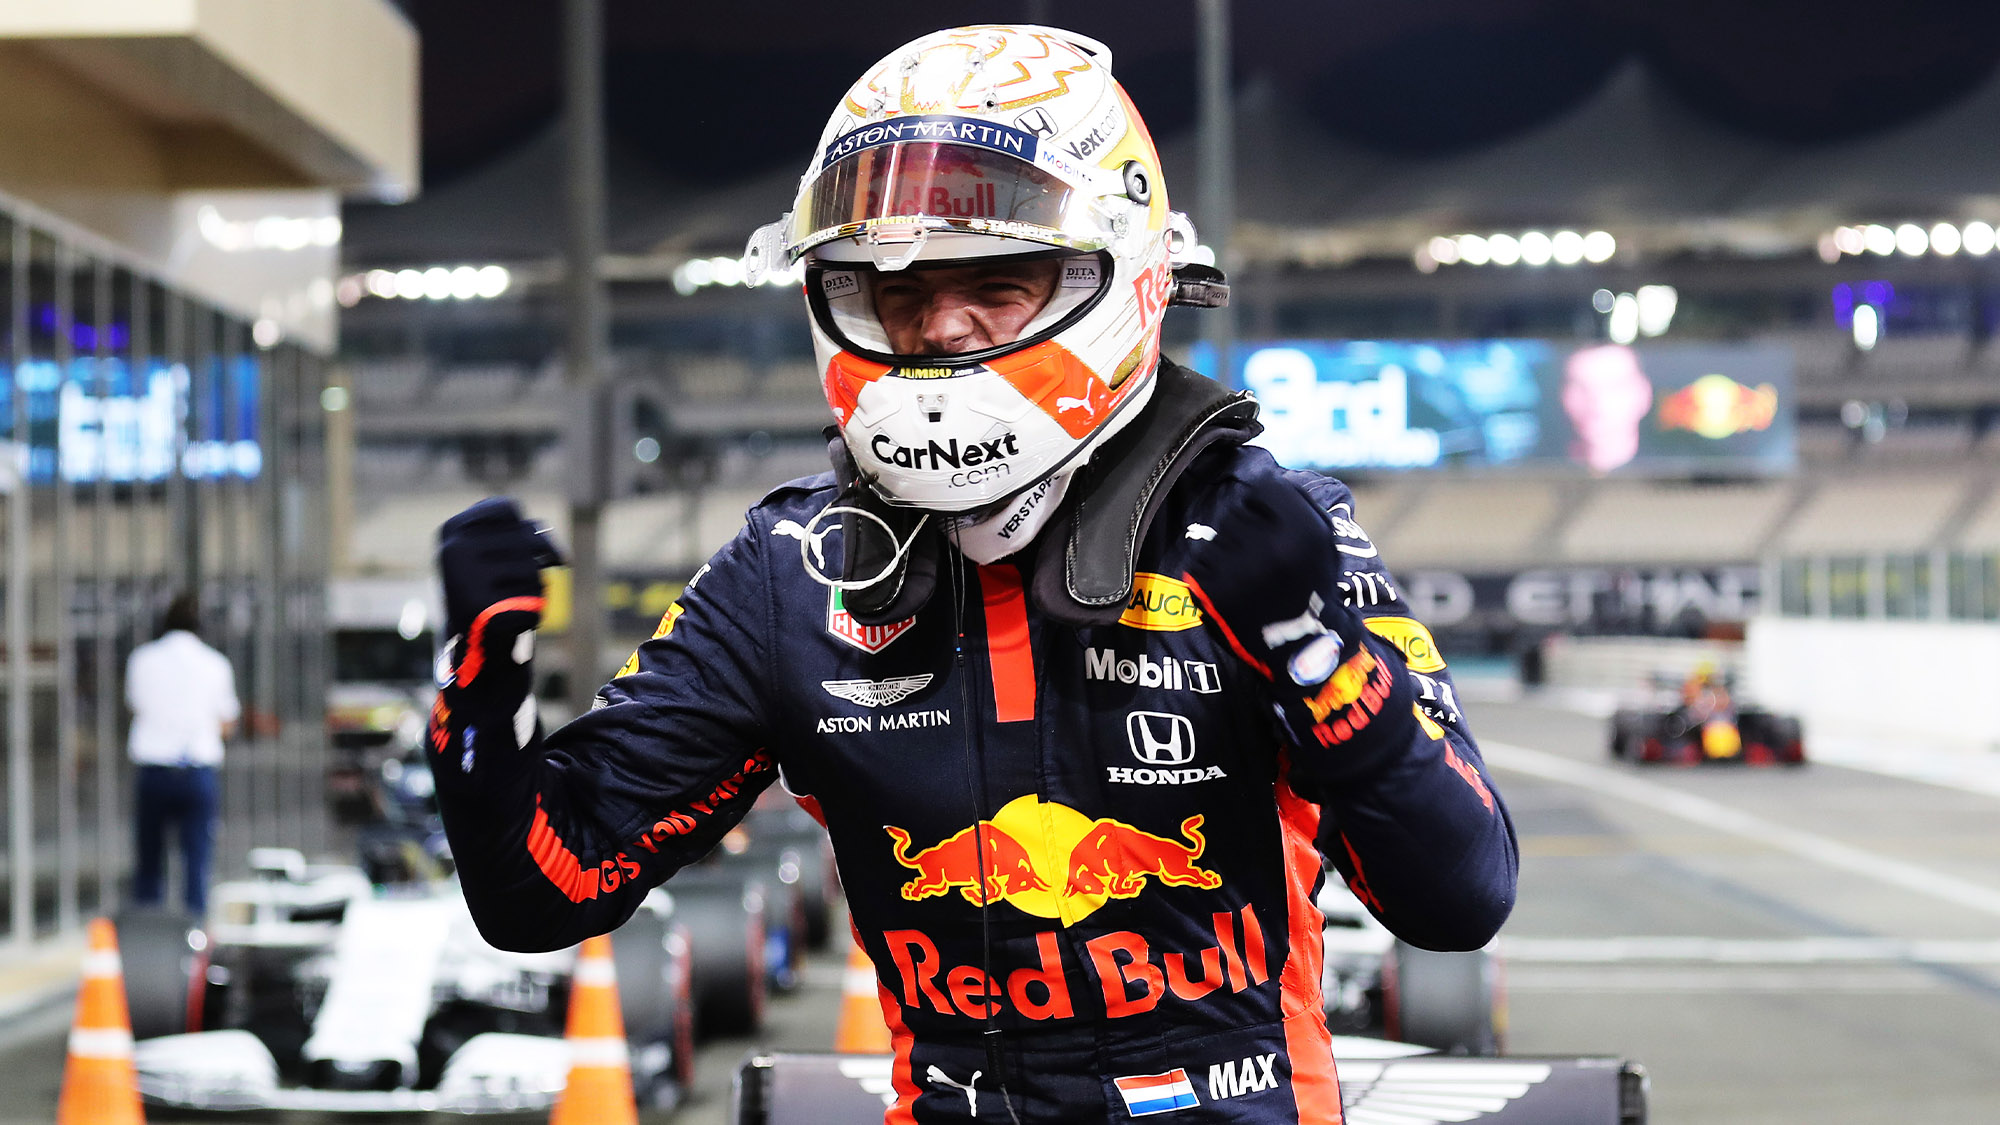 Max vs Lewis battle is set: 2020 Abu Dhabi Grand Prix qualifying report